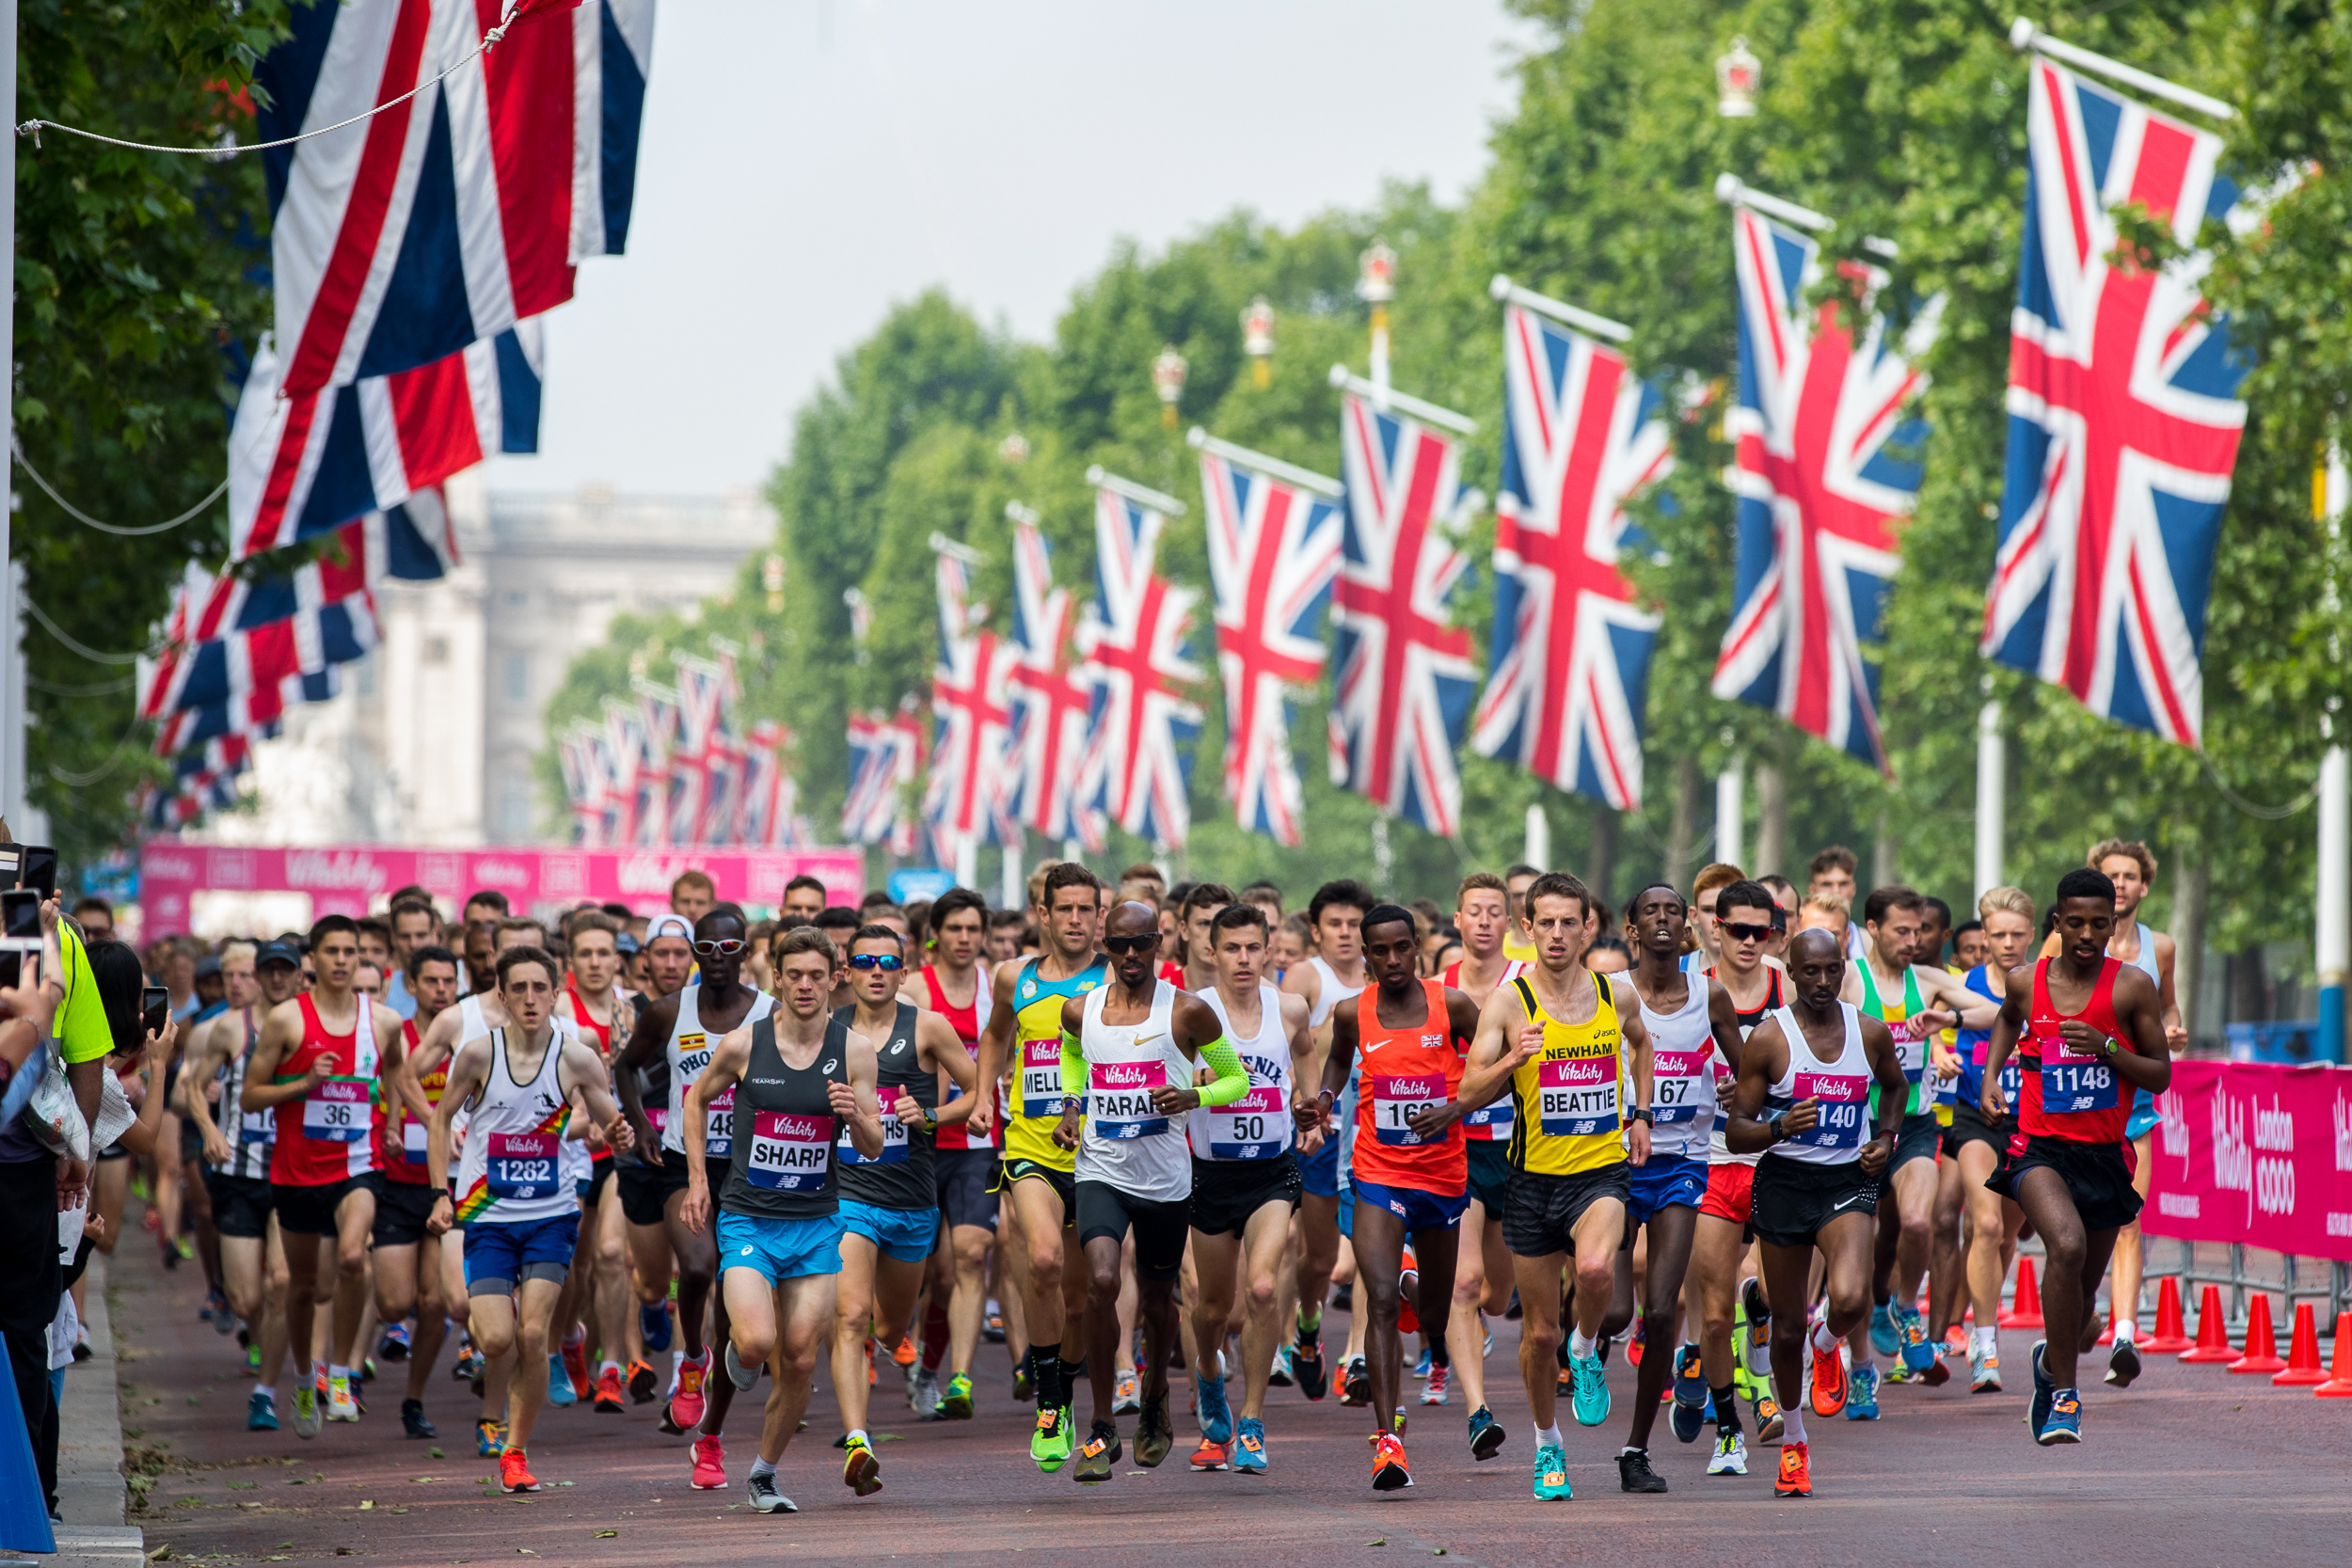 Mo Farah (centre, white vest) runs in the the Vitality 10KM race in central London. He later went on to win the race. May 2018 - London, UK.